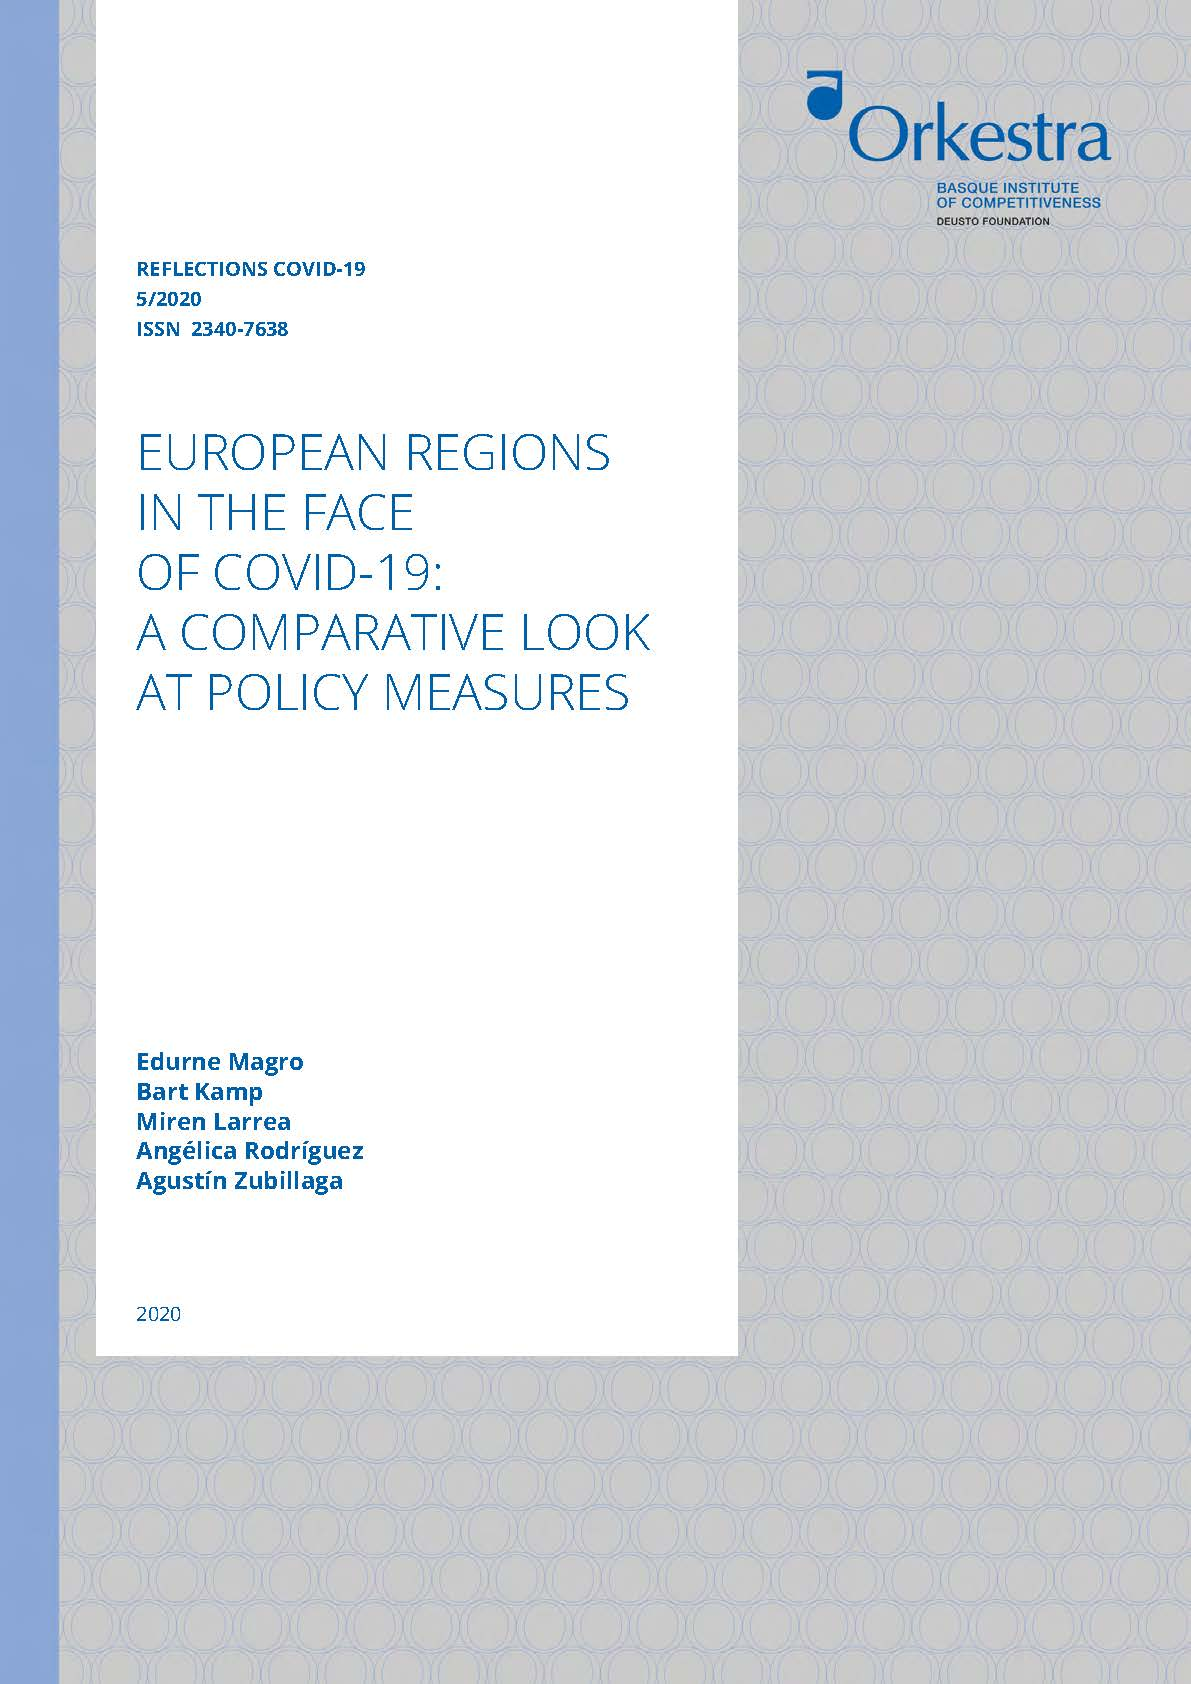 200037-European-regions-face-Cmparative-look-policy-measures.jpg